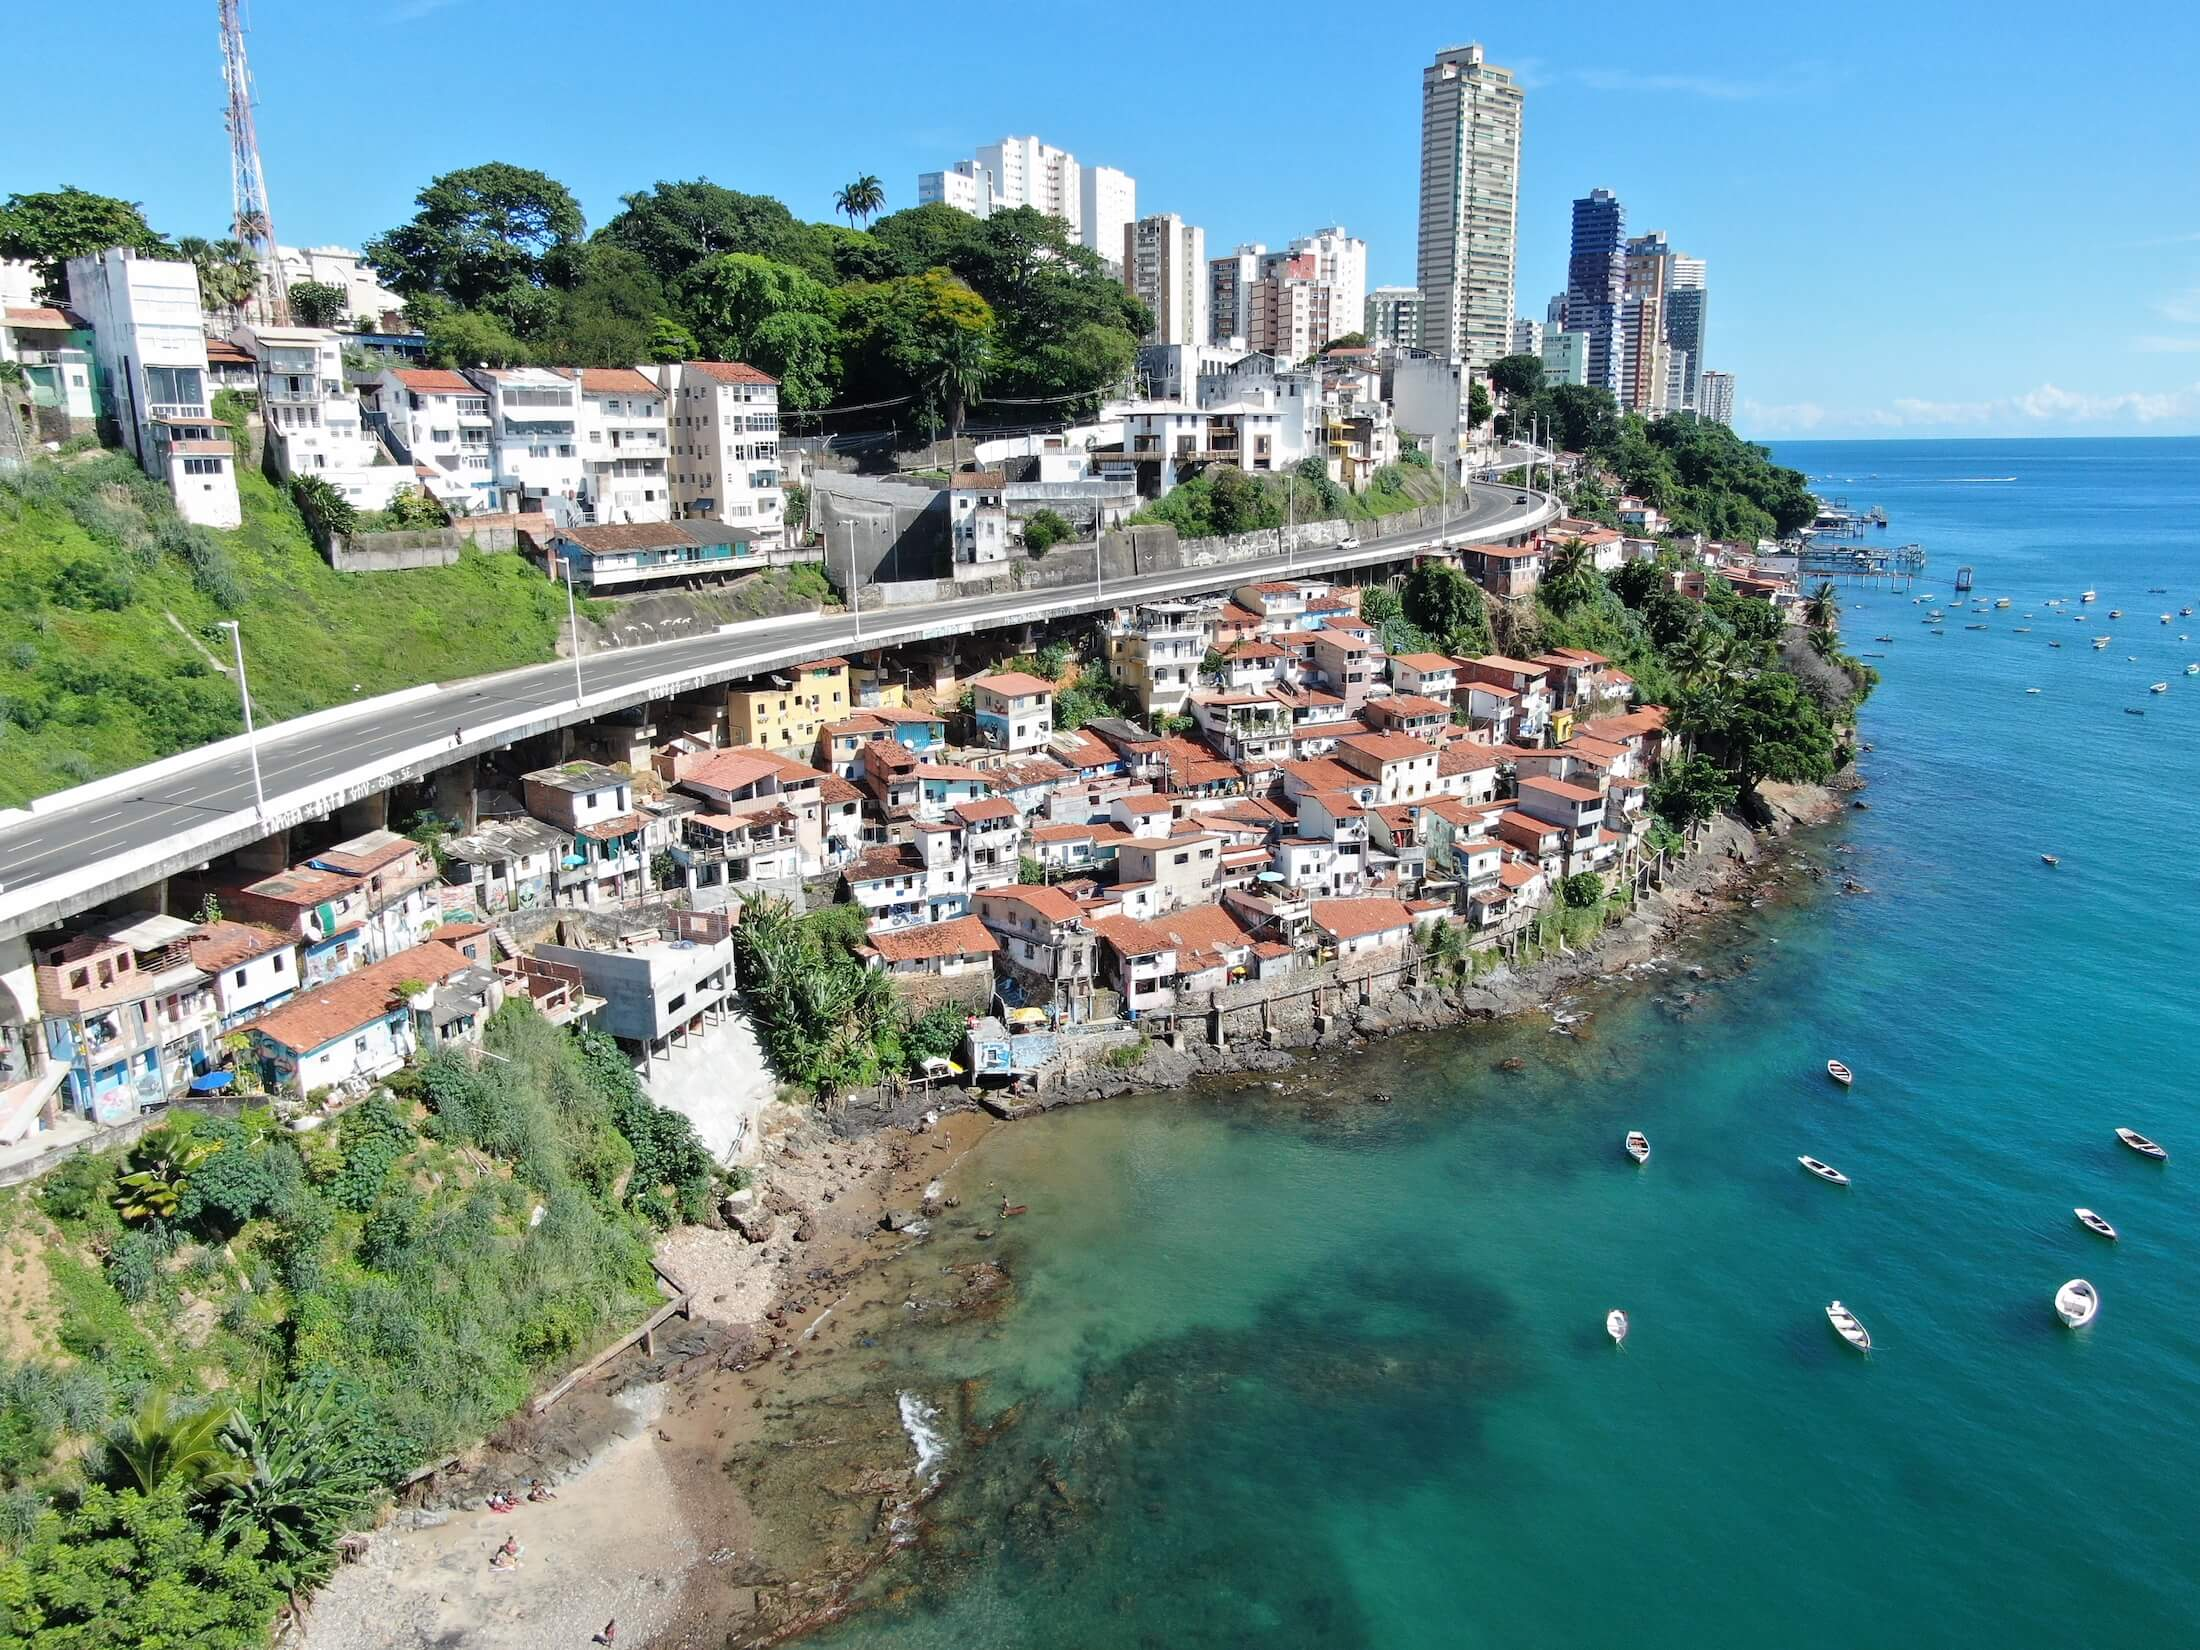 Salvador da Bahia is one of the coolest places in the entire world to visit, and one of the tastiest when it comes to local street food